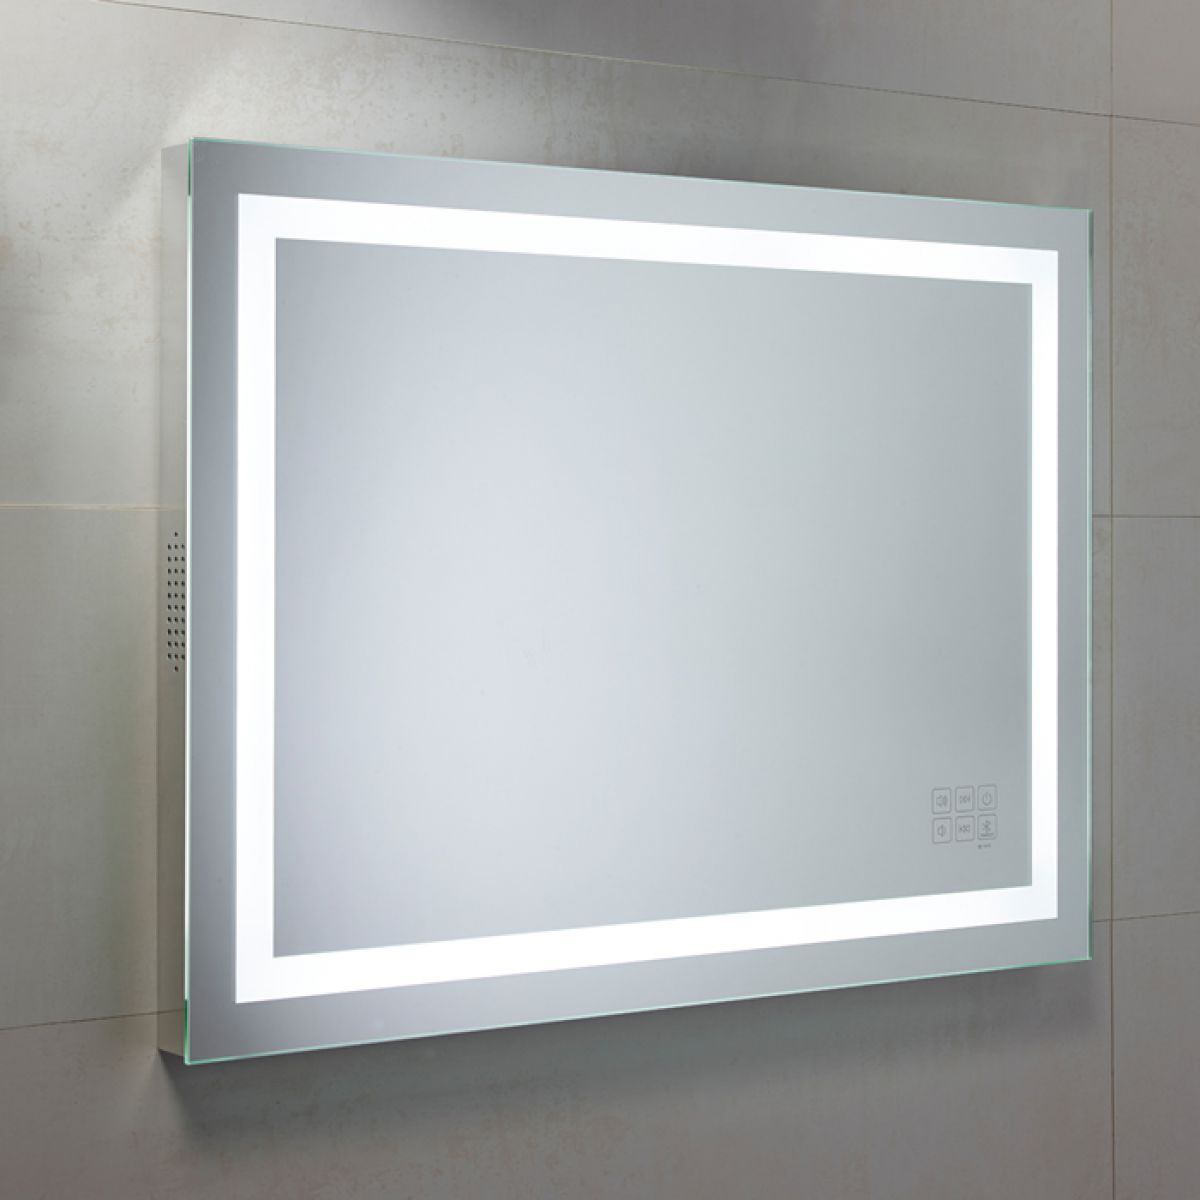 Roper Rhodes Beat Illuminated Mirror Ukbathrooms